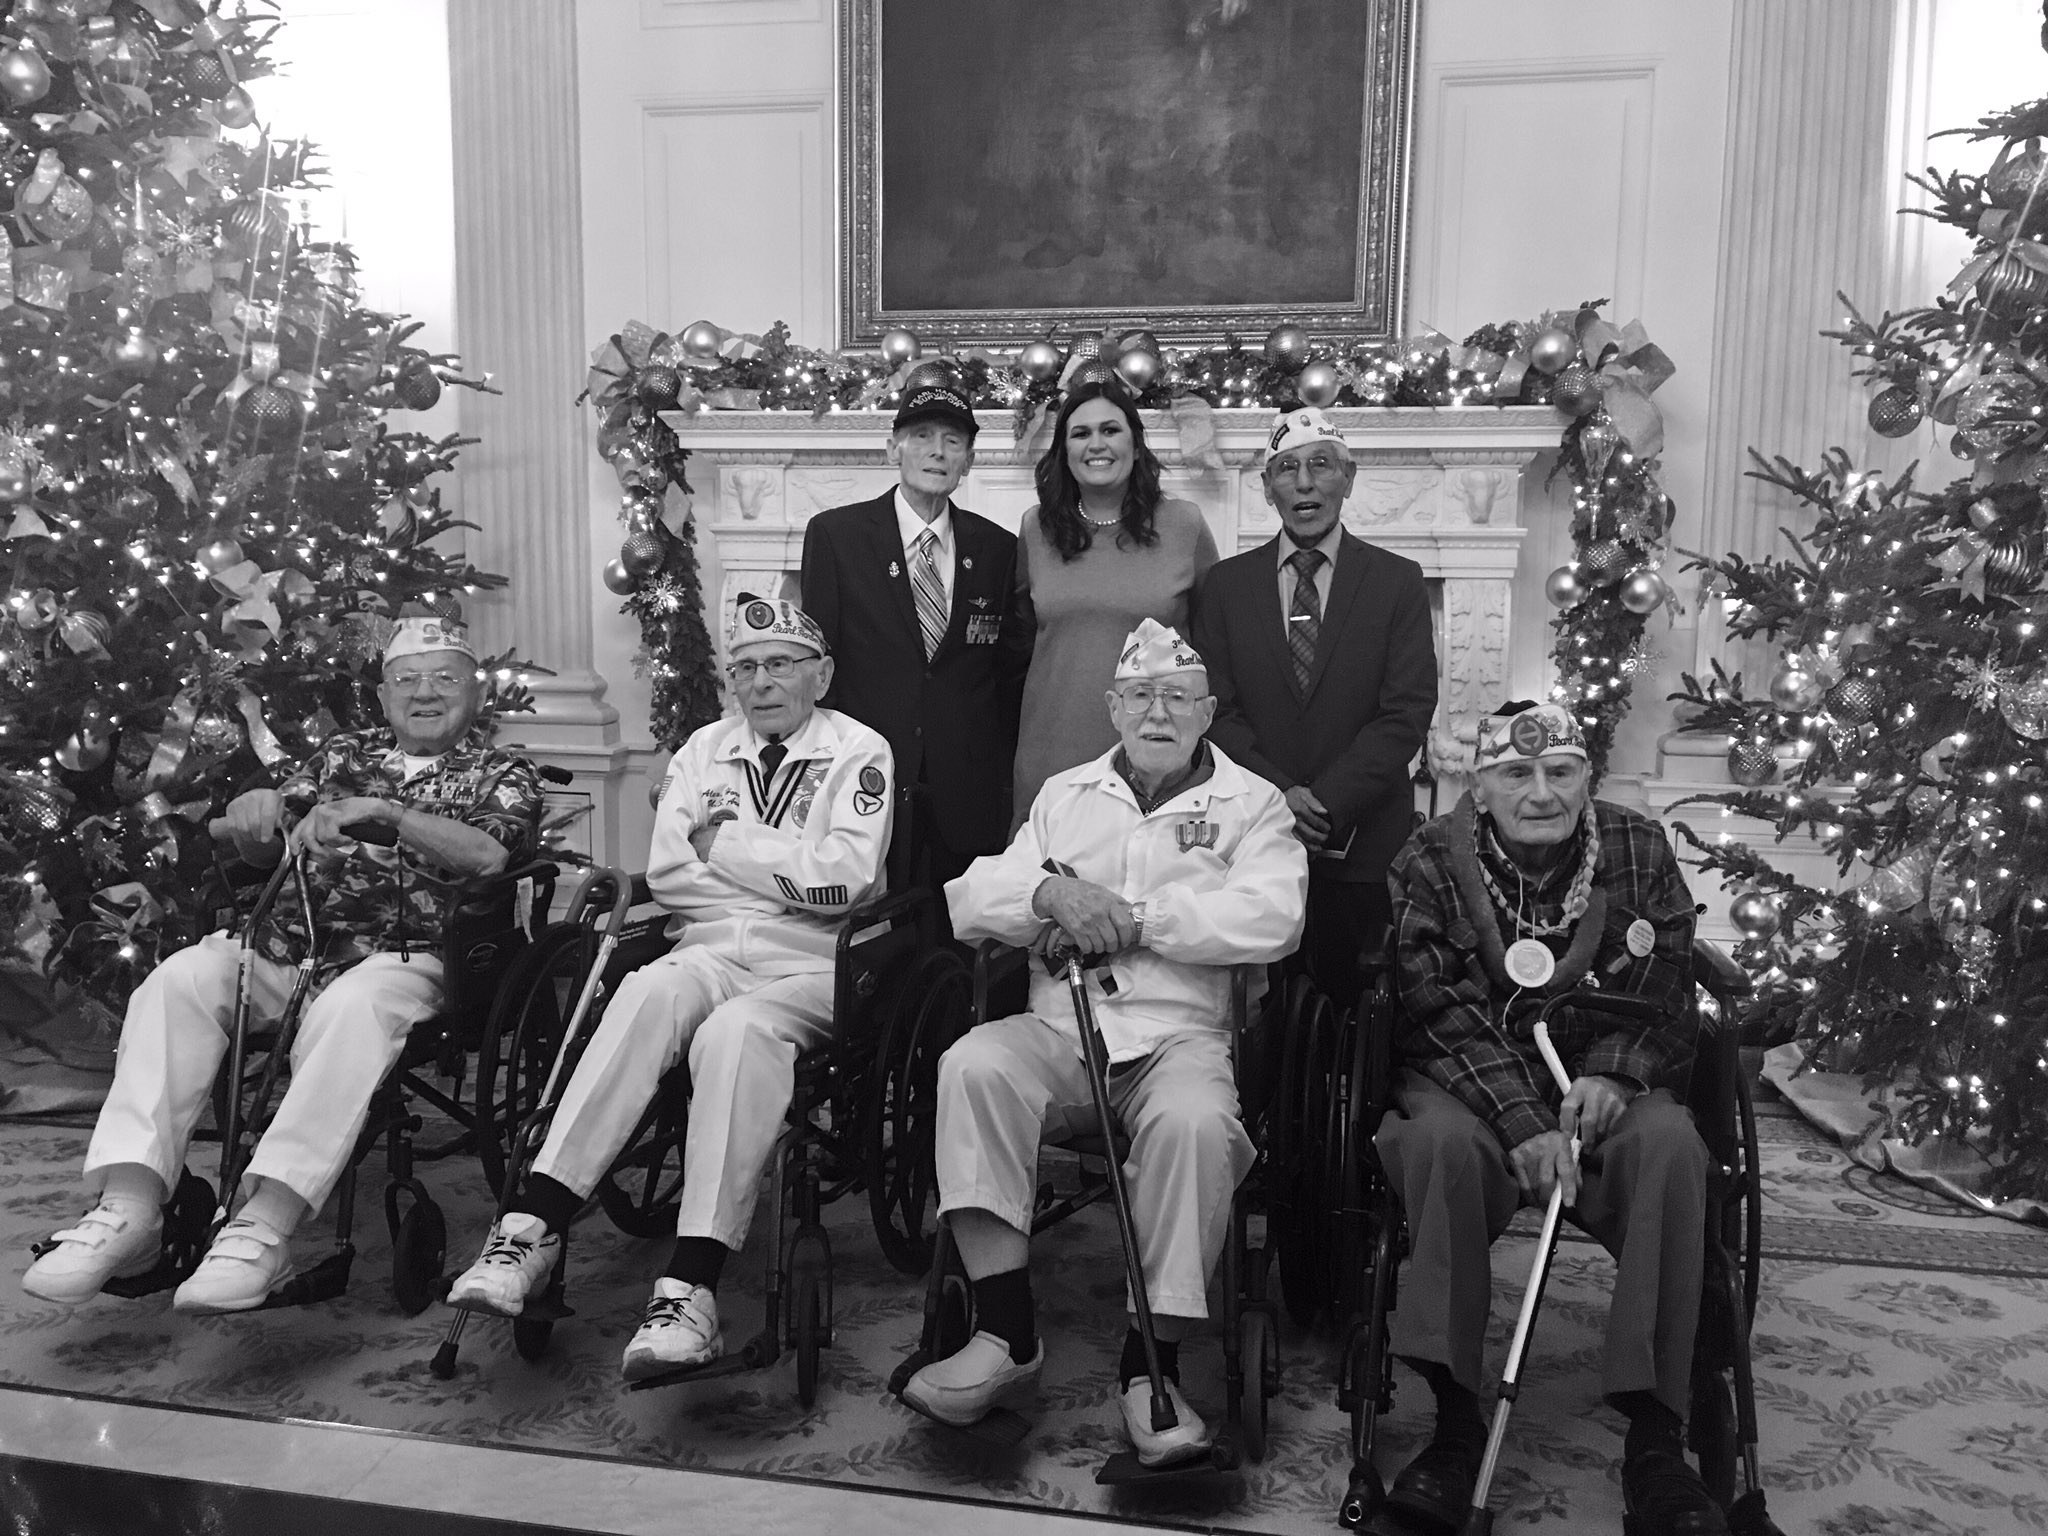 Such an honor to meet these American Heros @WhiteHouse today. #PearlHarborRememberanceDay https://t.co/IvC9JGs9lQ